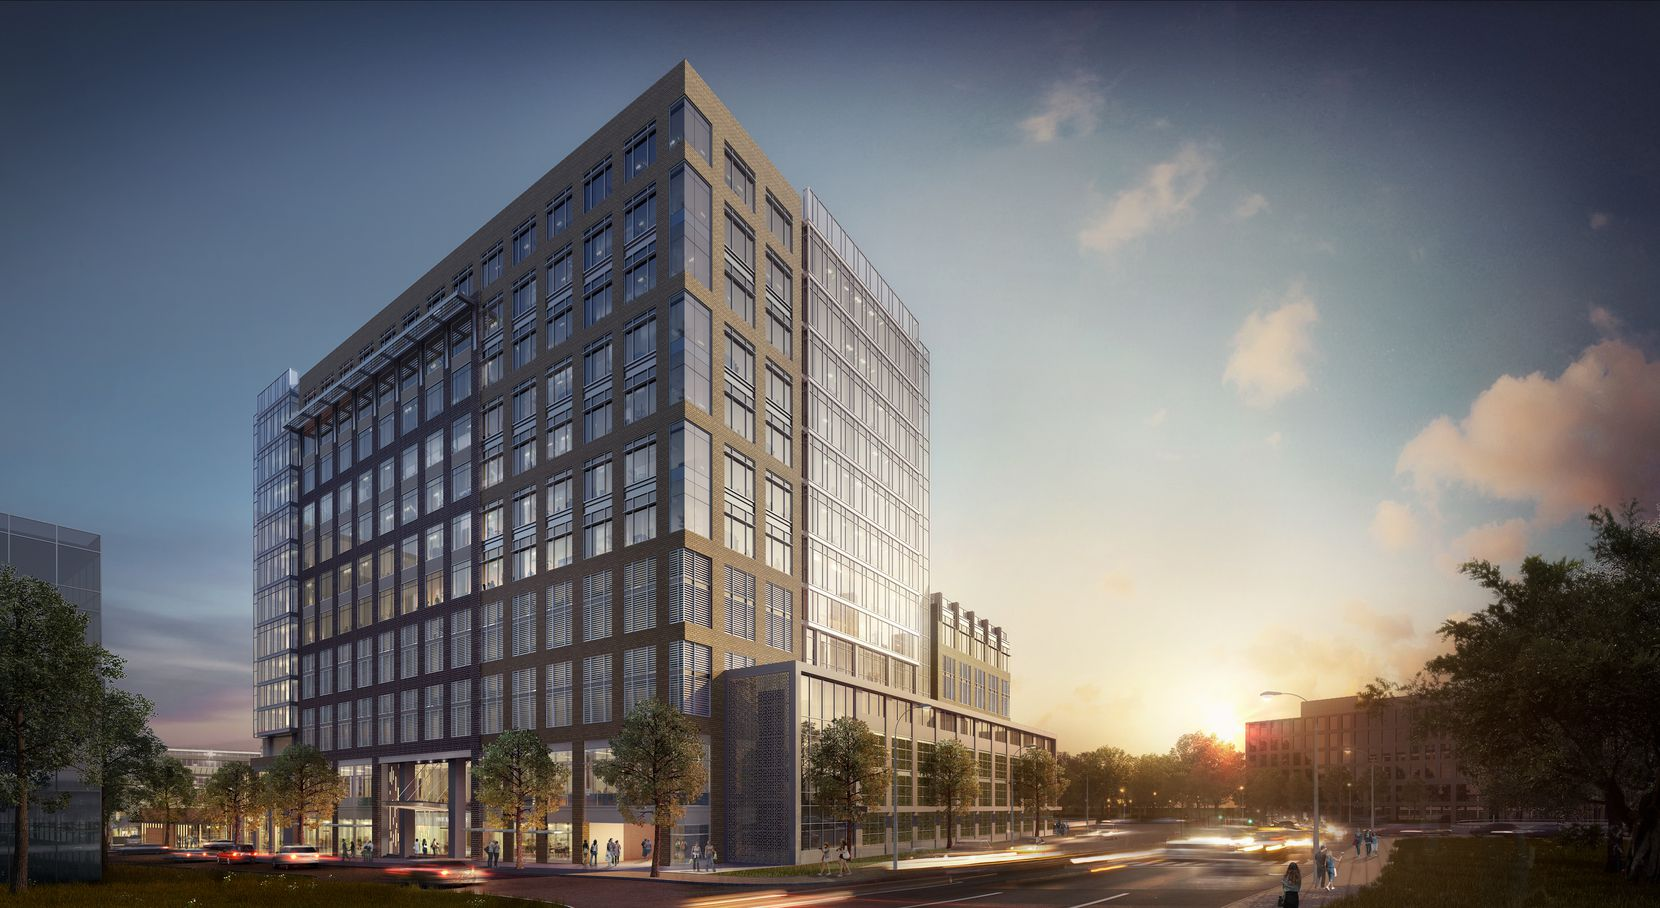 The office tower at Park Lane will be up to 11 stories.